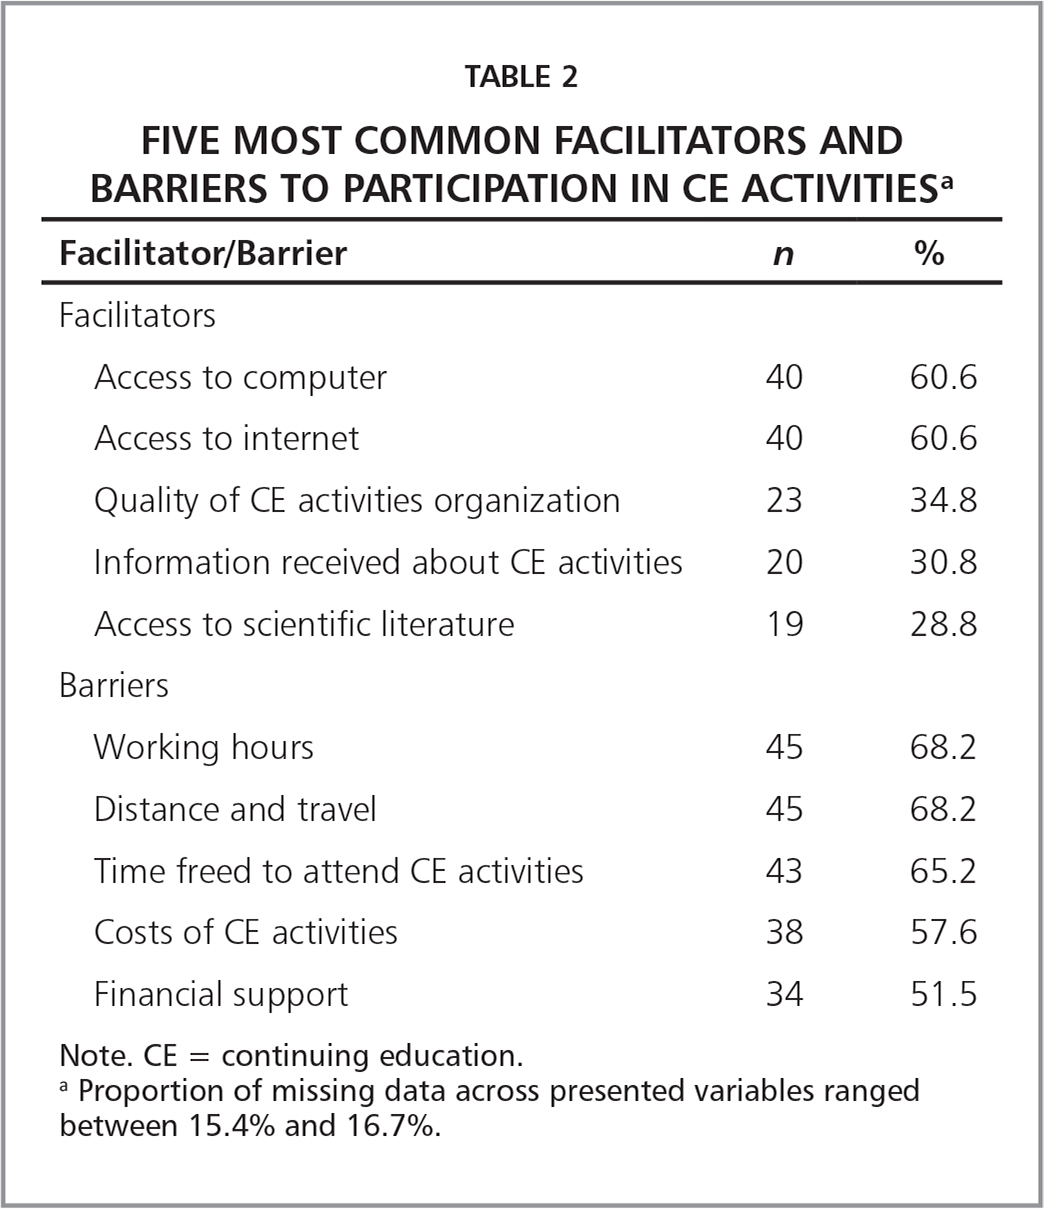 Five Most Common Facilitators and Barriers to Participation in CE Activitiesa